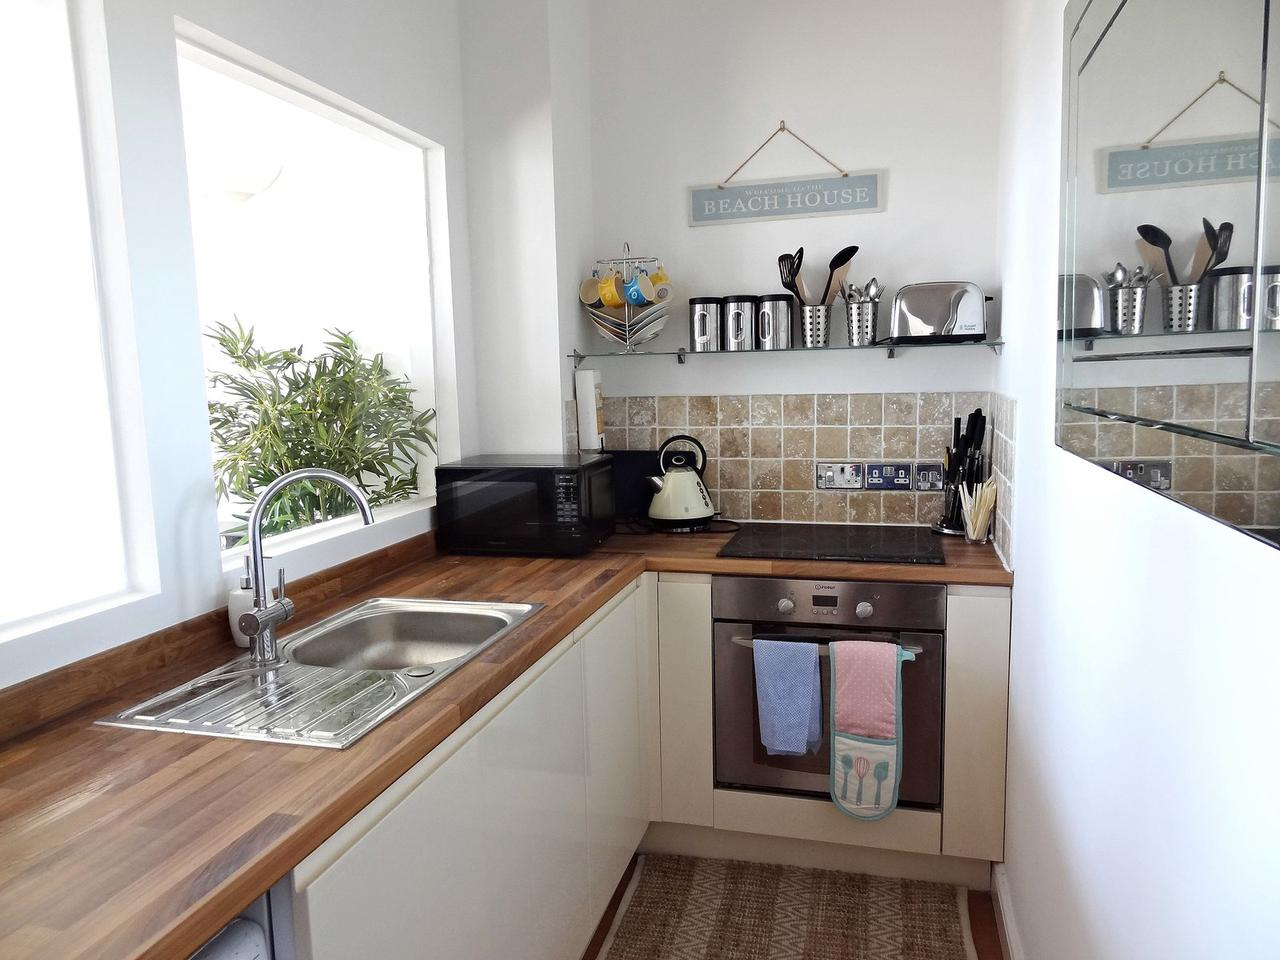 Beachfront Apartment, Brighton & Hove Images - 12